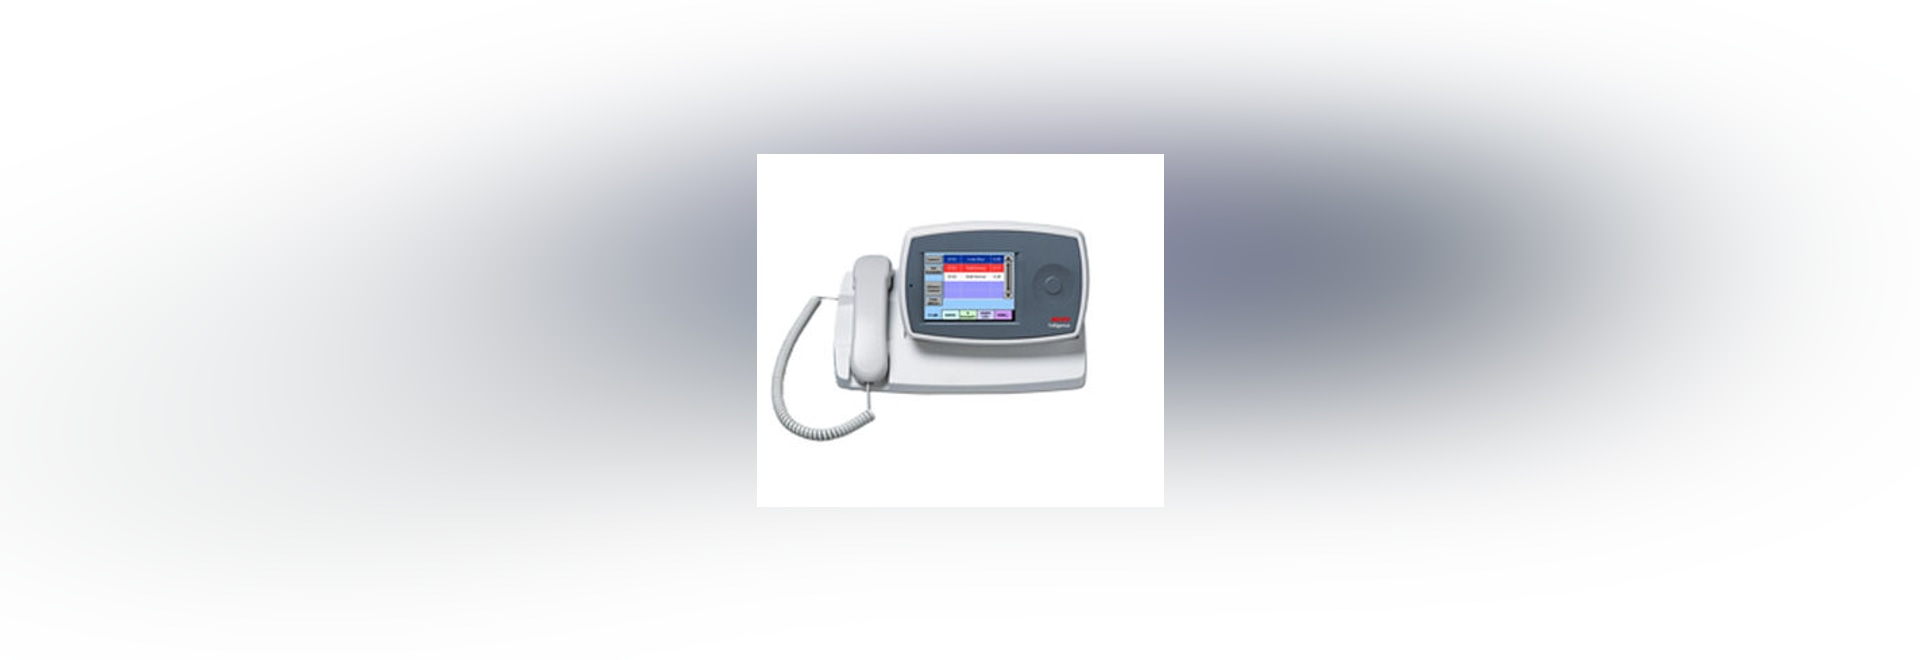 NEW: medical telephone by Ascom